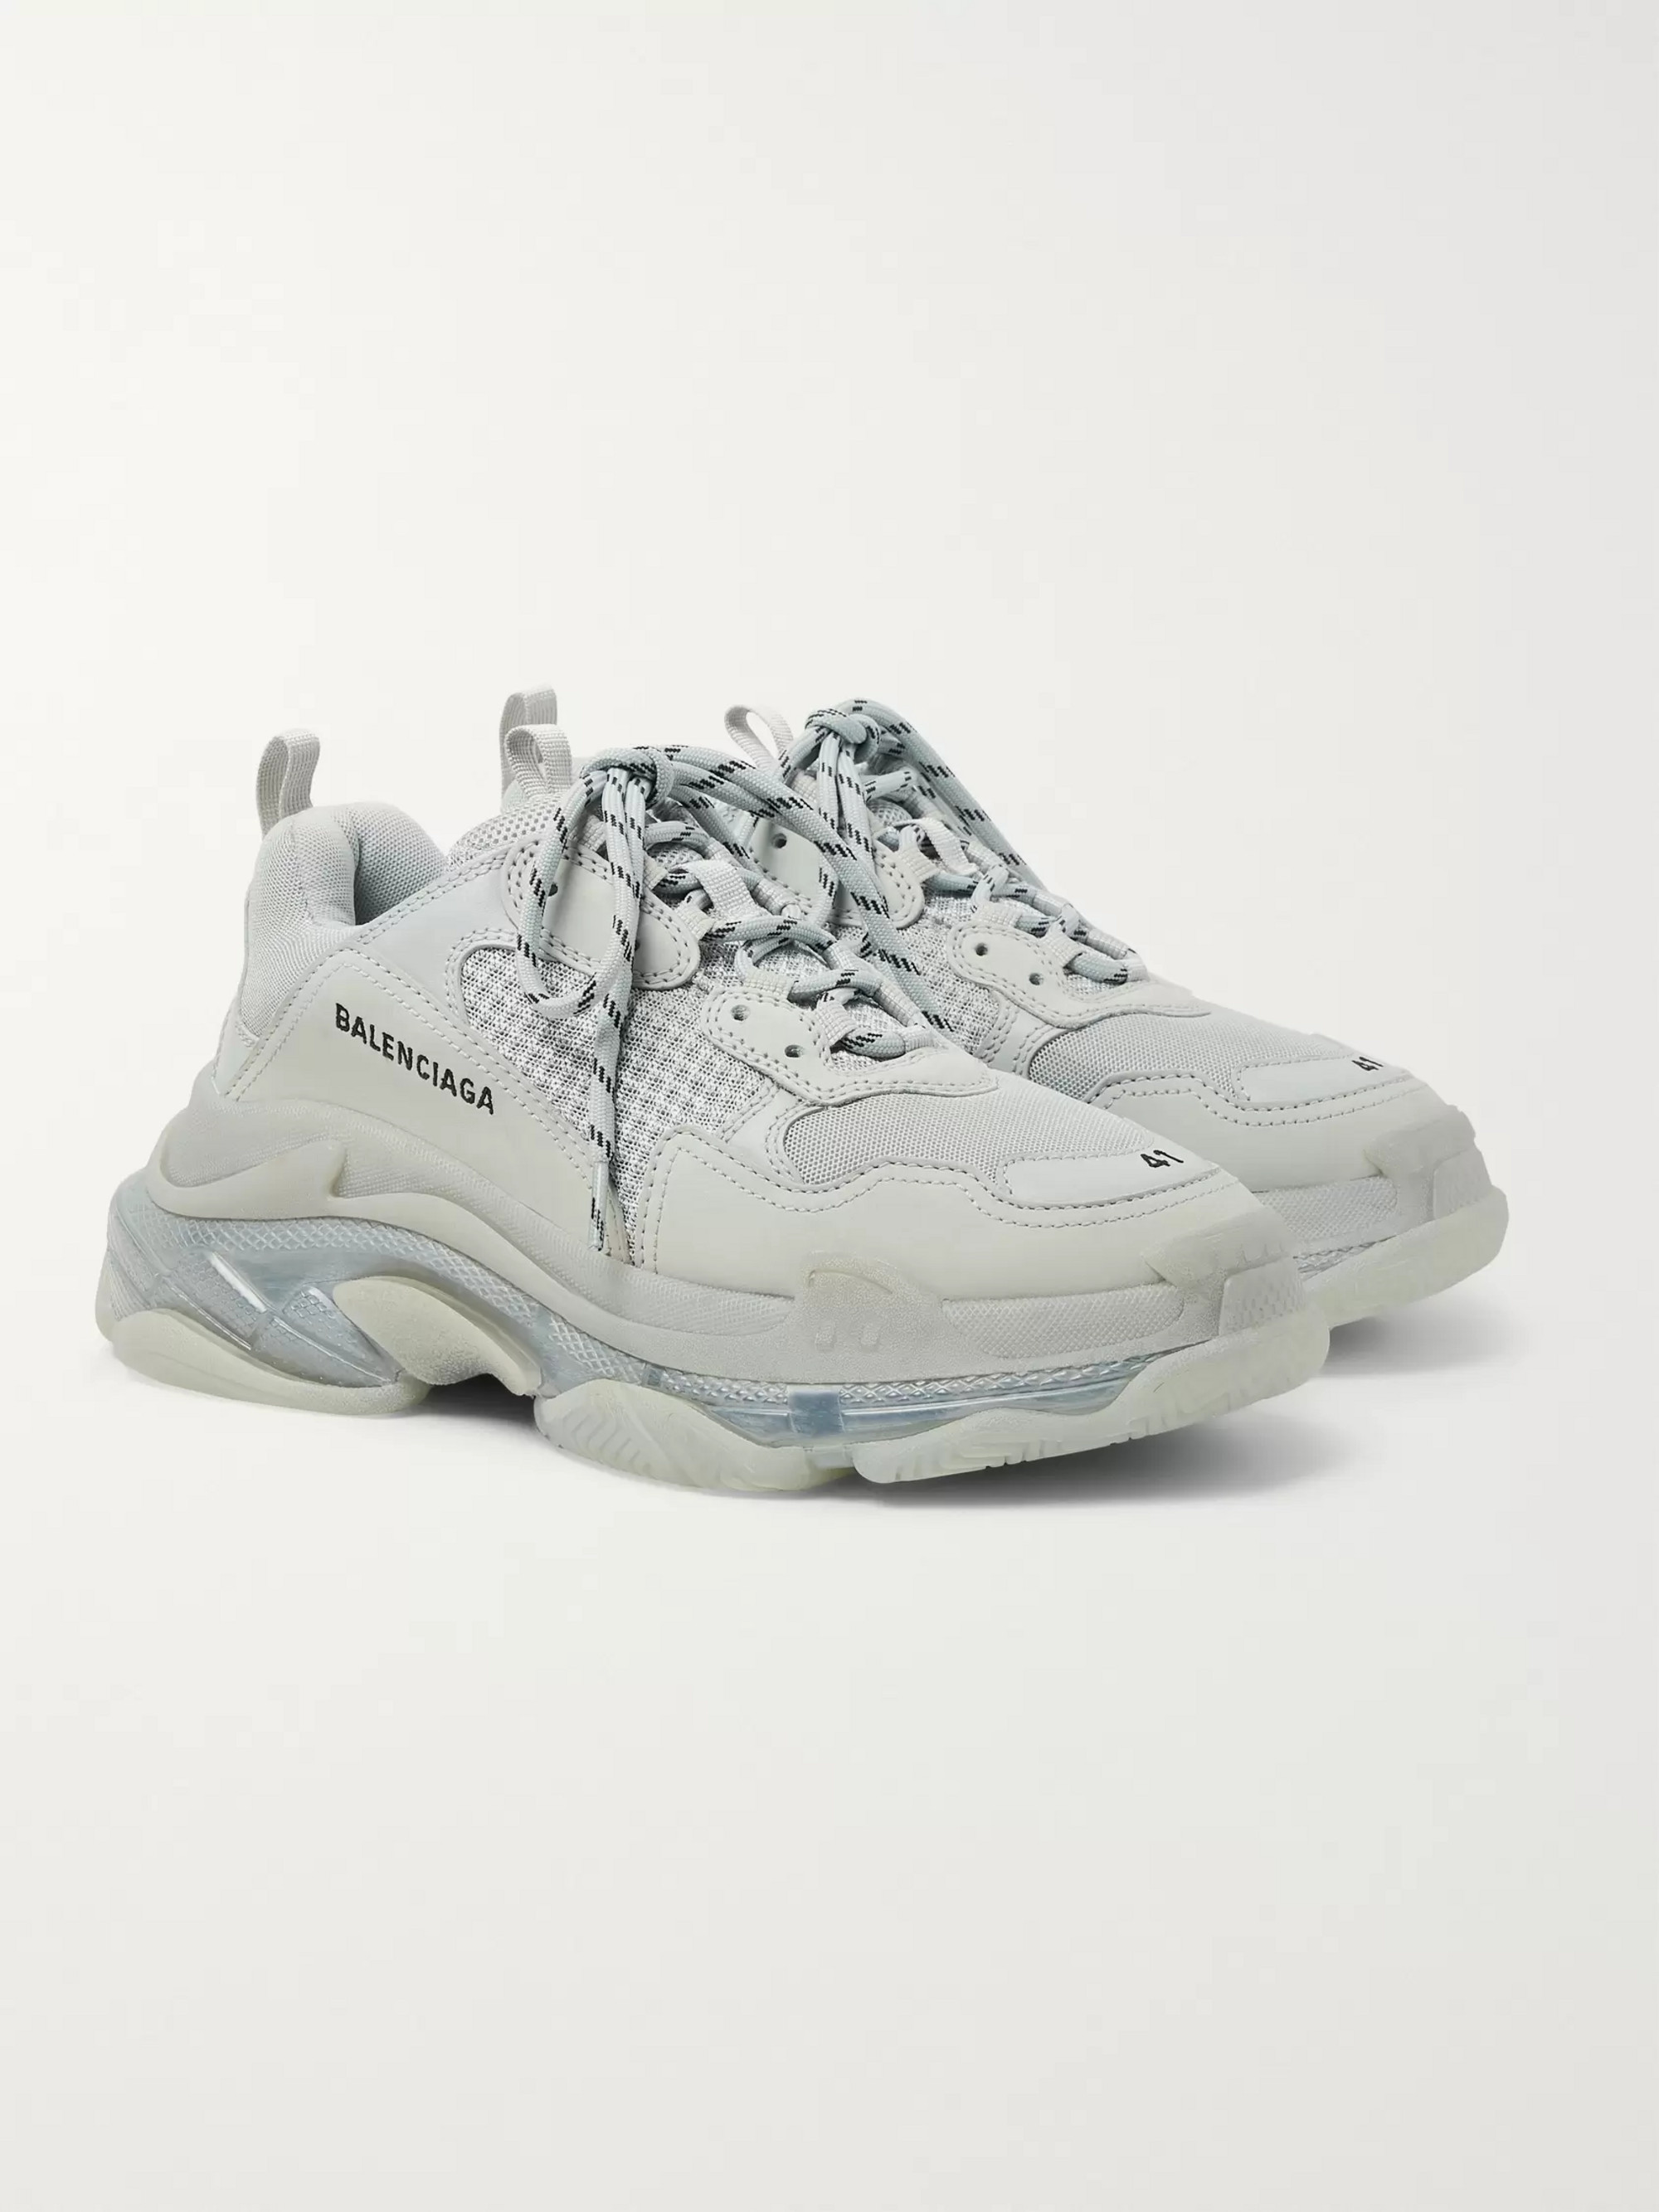 7bff9d1ebd36b Balenciaga Triple S Clear Sole Mesh, Nubuck and Leather Sneakers